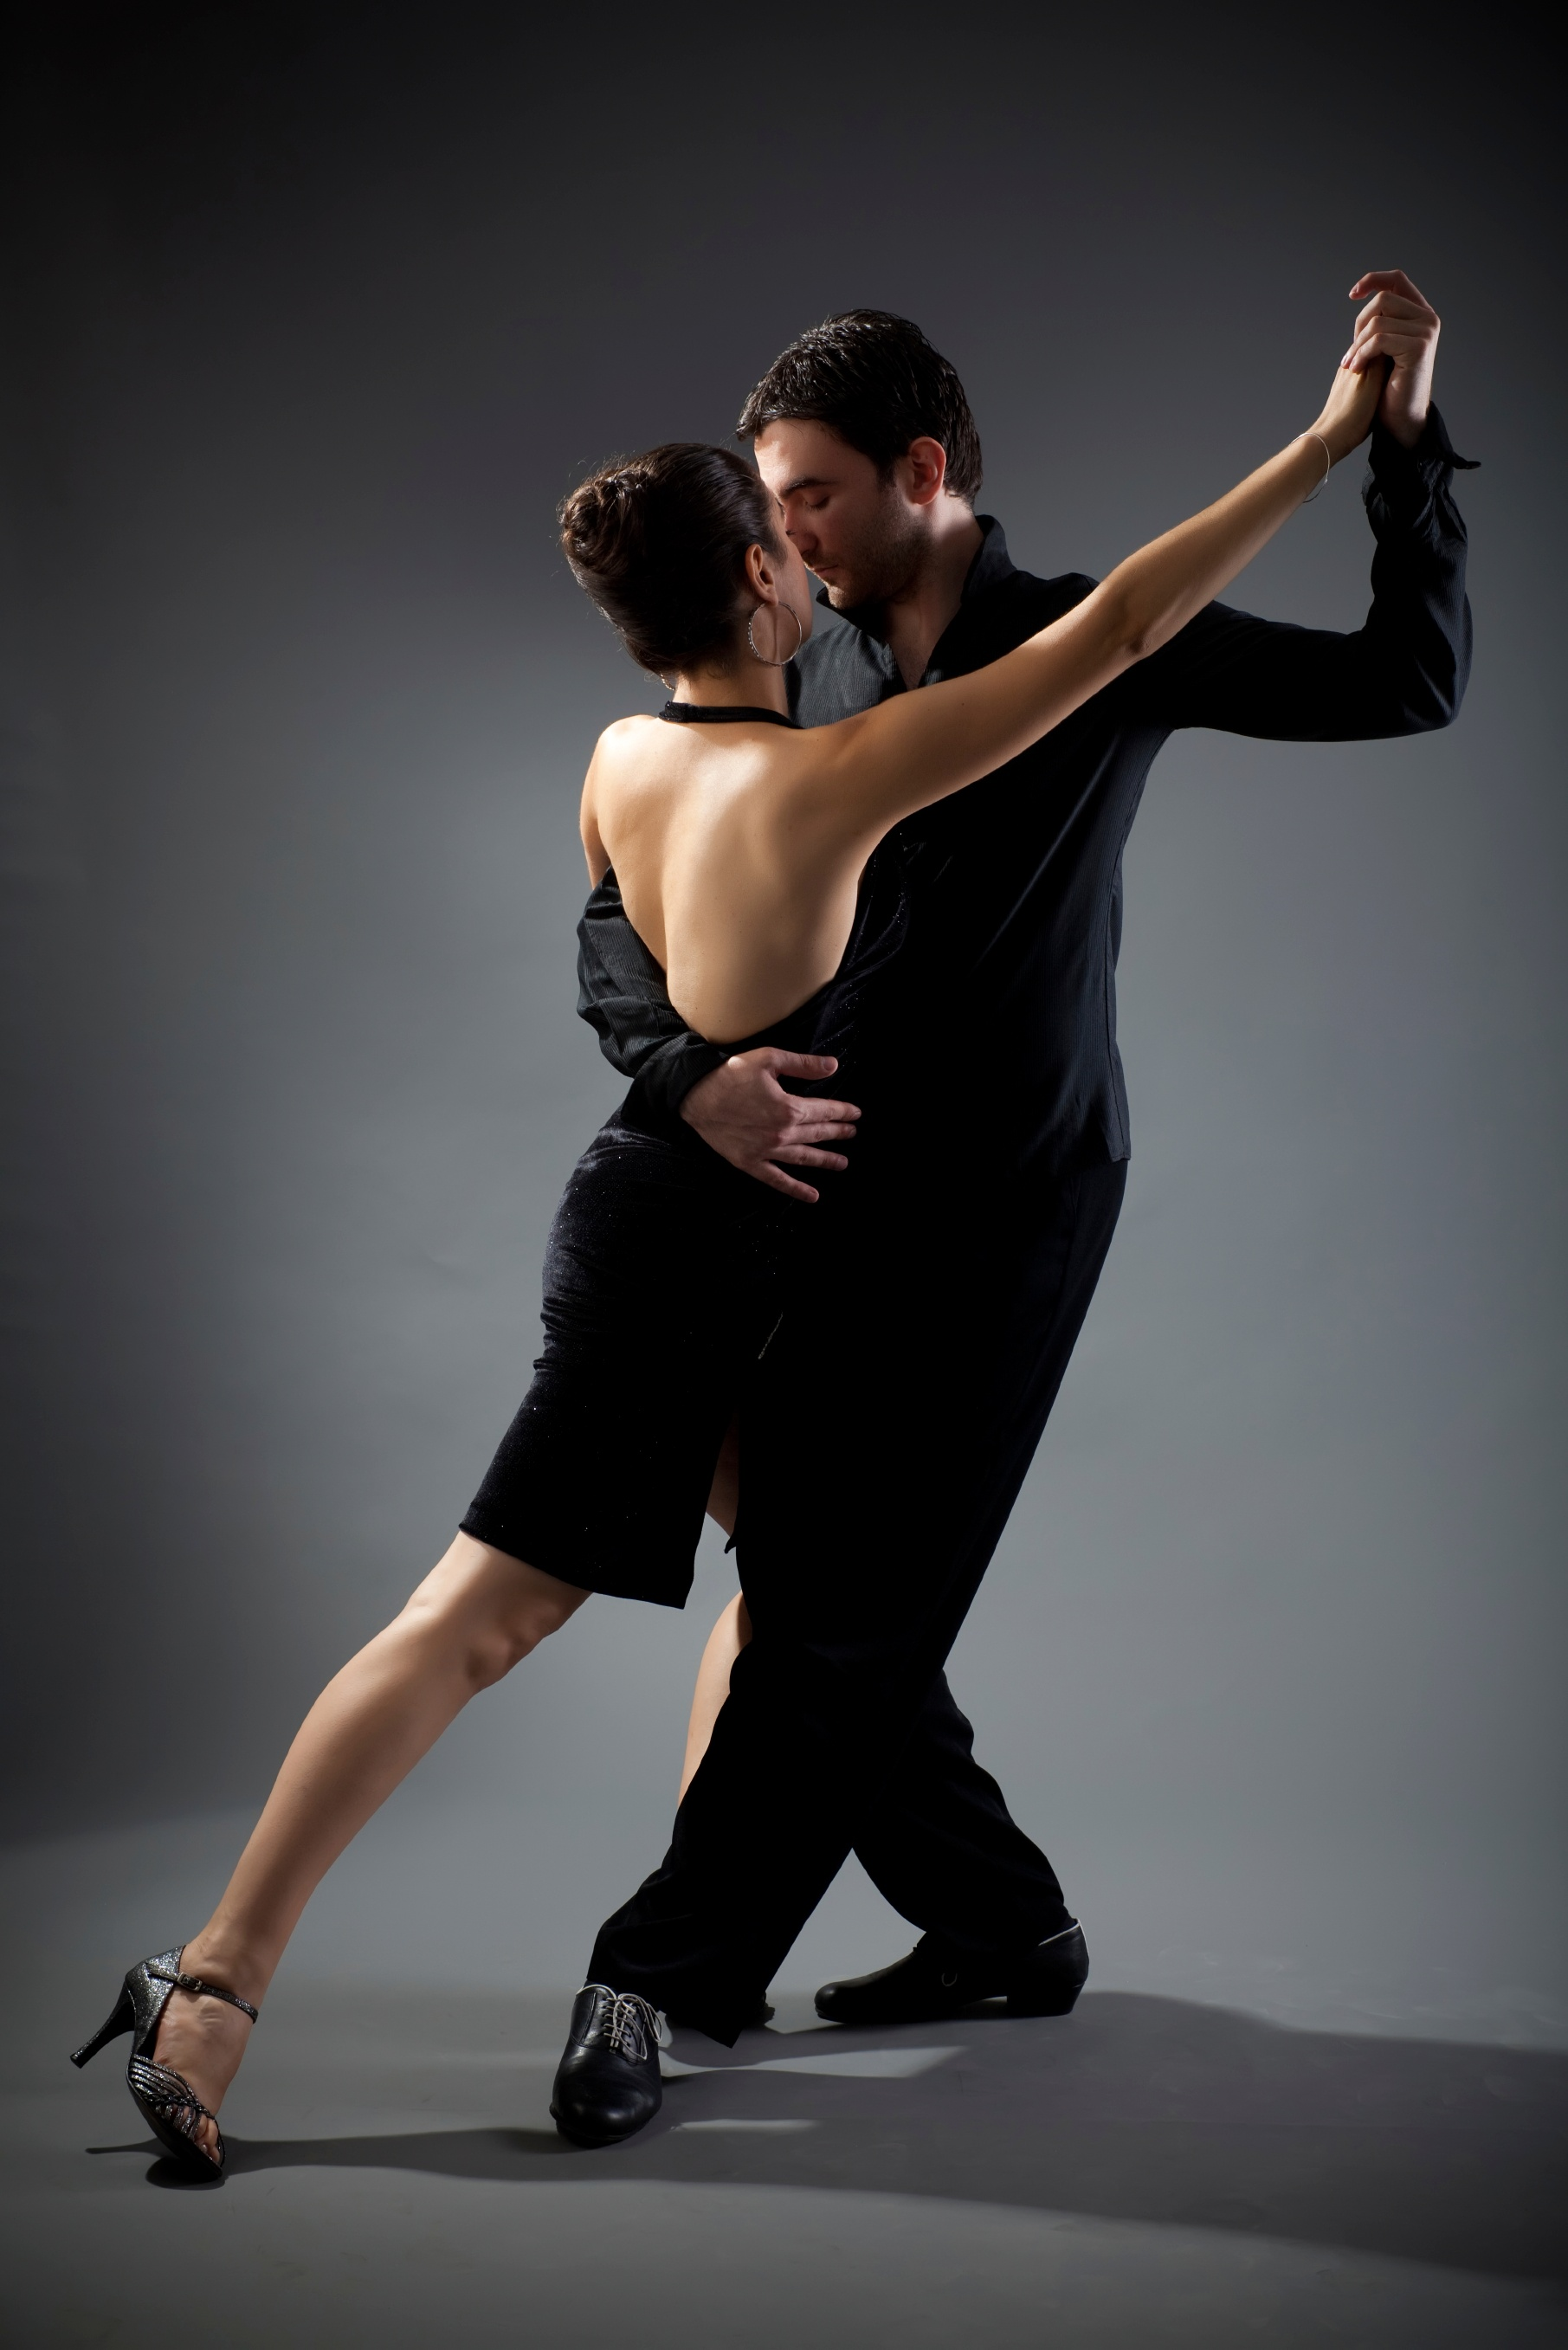 Tango-couple-dancing-000014371299_Large.jpg